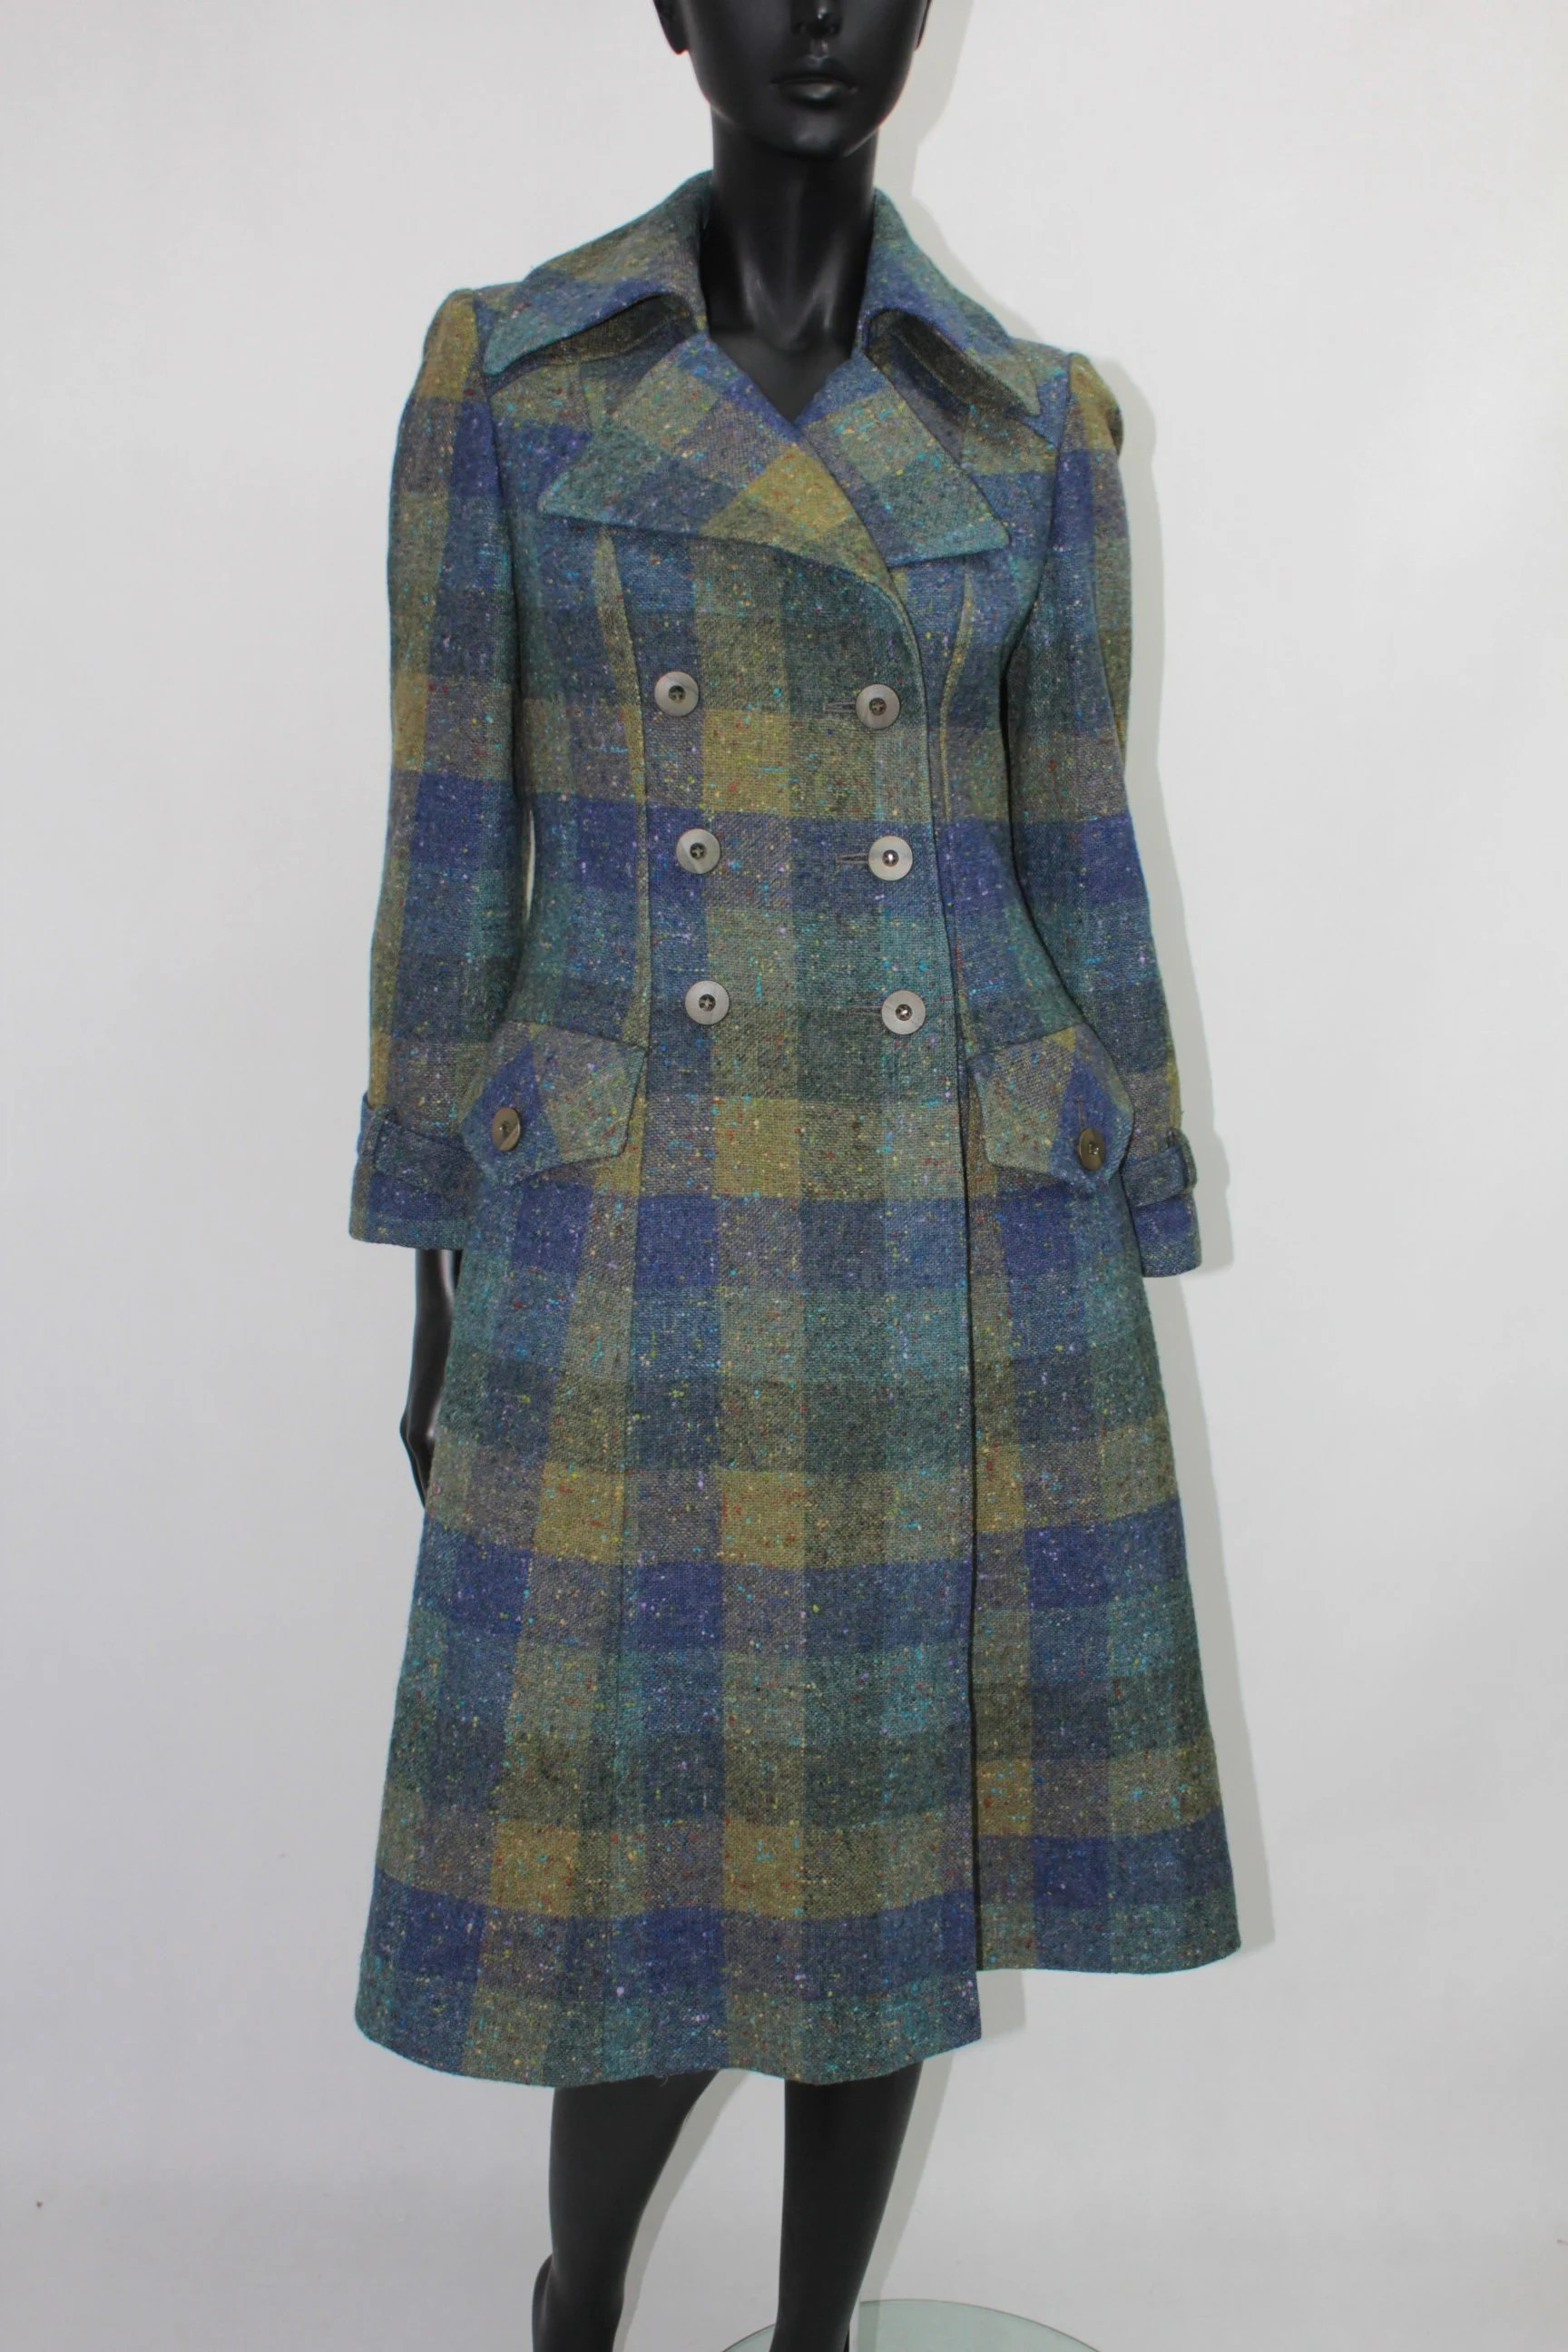 Pet Carrier Olx Vintage Feminella Wool Green Blue Plaid Long Coat Jacket S M Made In England